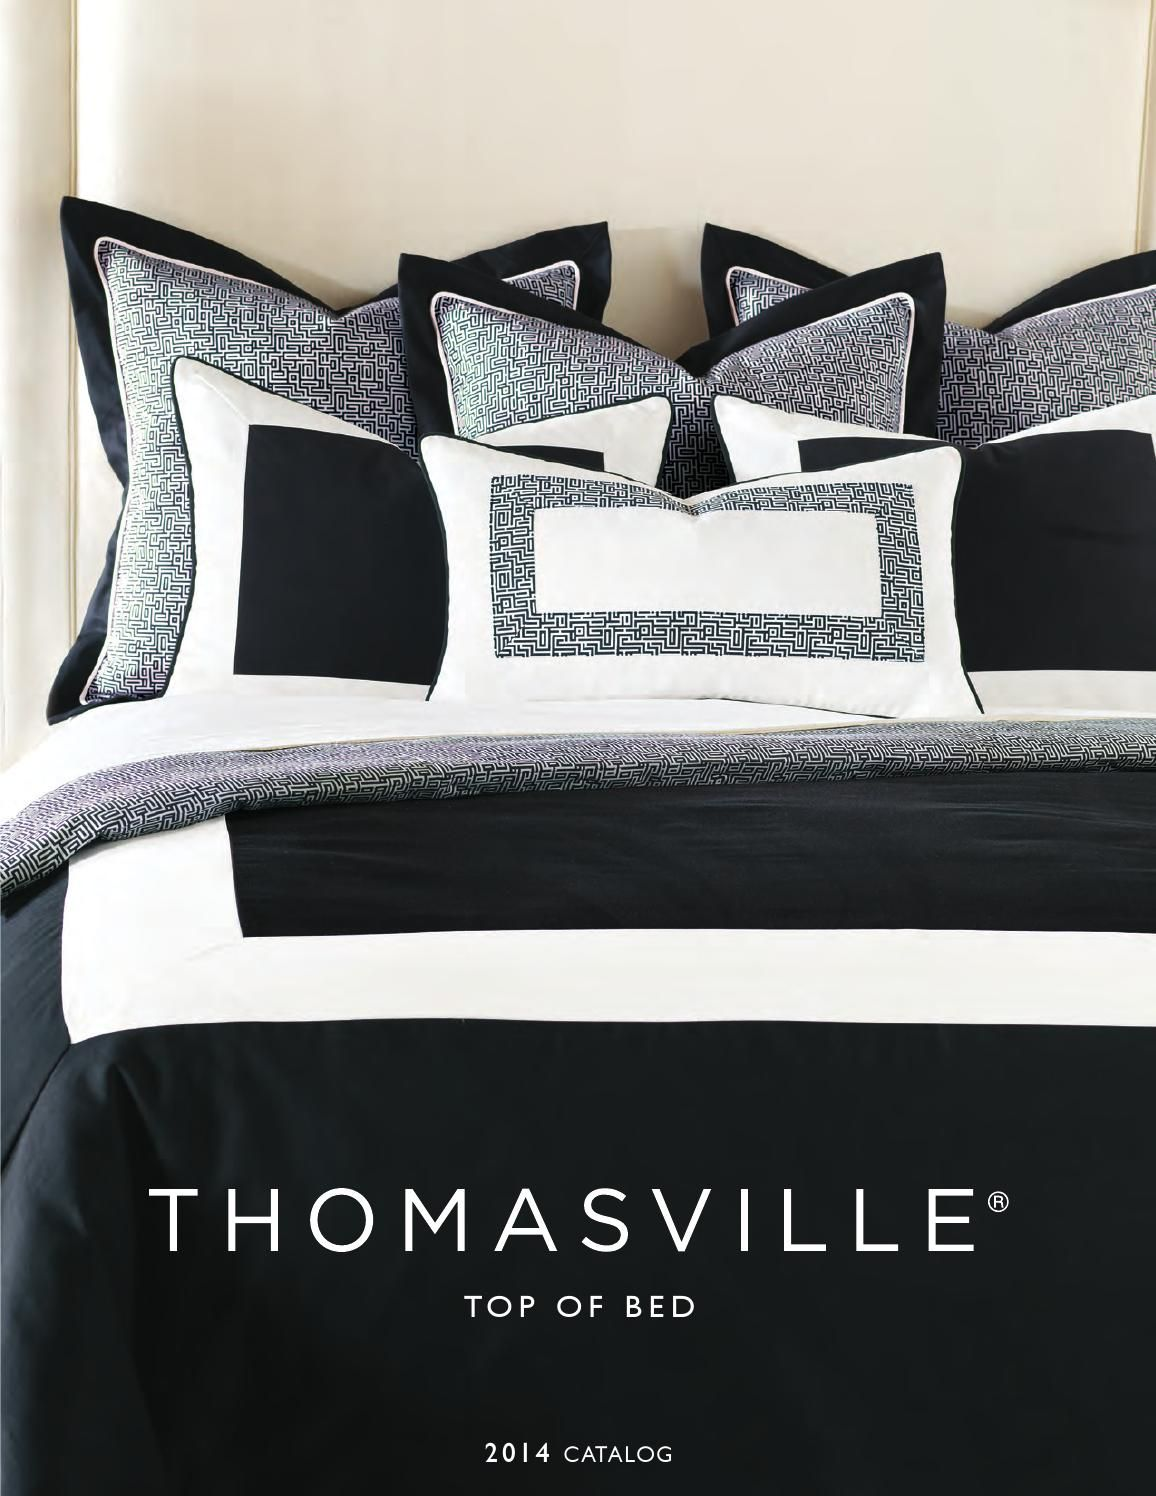 Thomasville Top Of Bed Catalog Top Of Bed Bed Bedding Catalogs